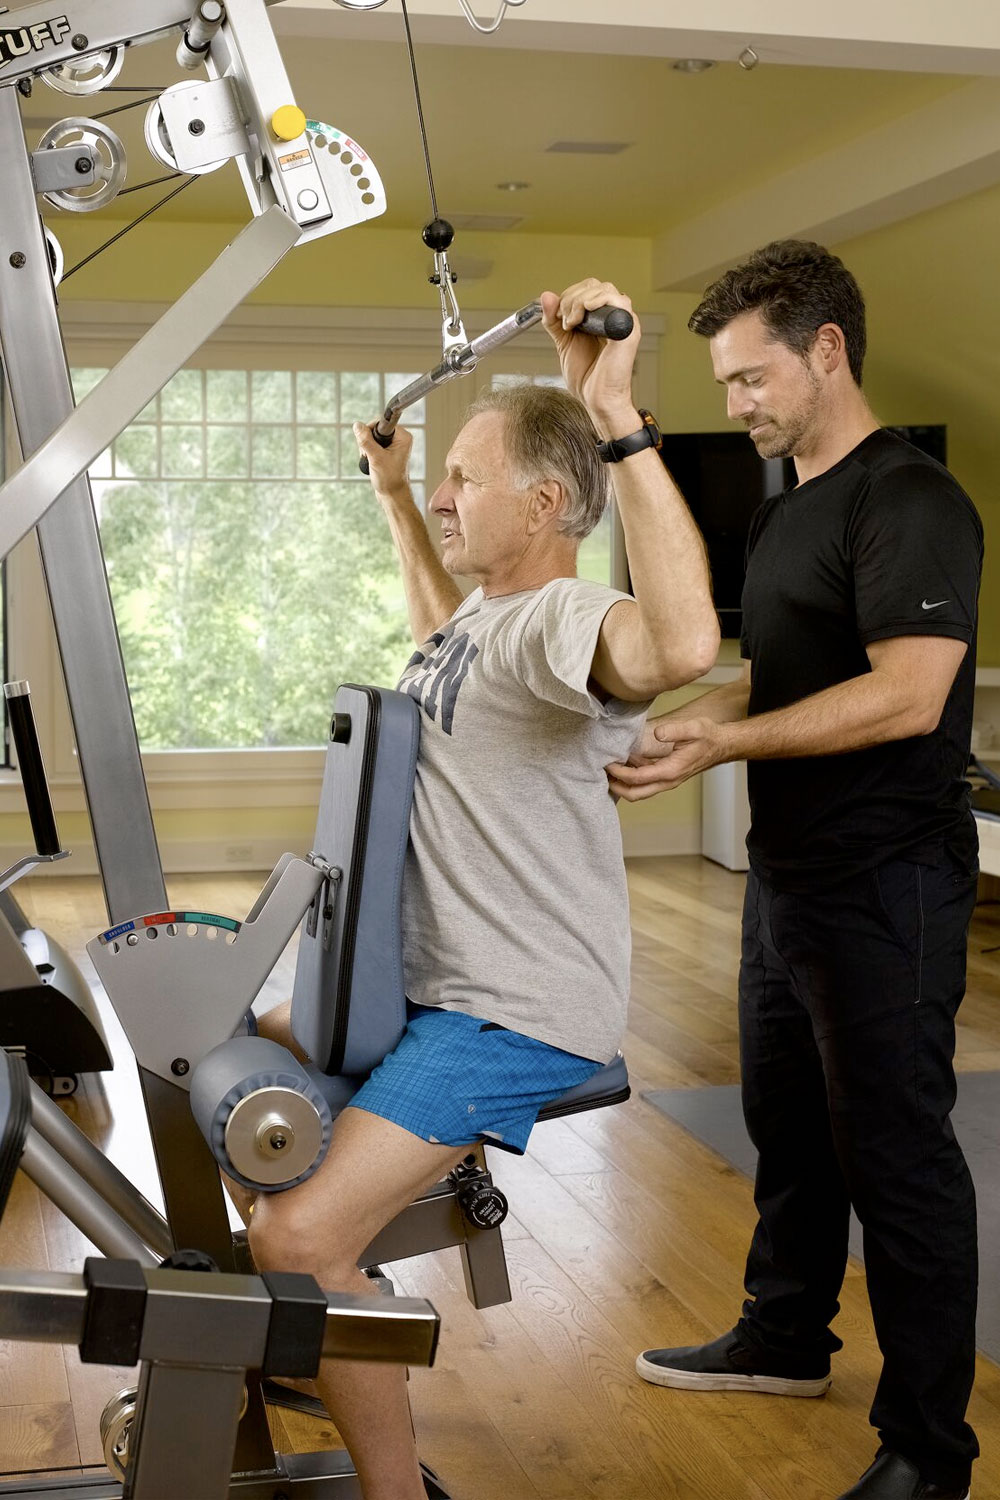 Bob and Dr. Jeremy James demonstrating strength training exercise